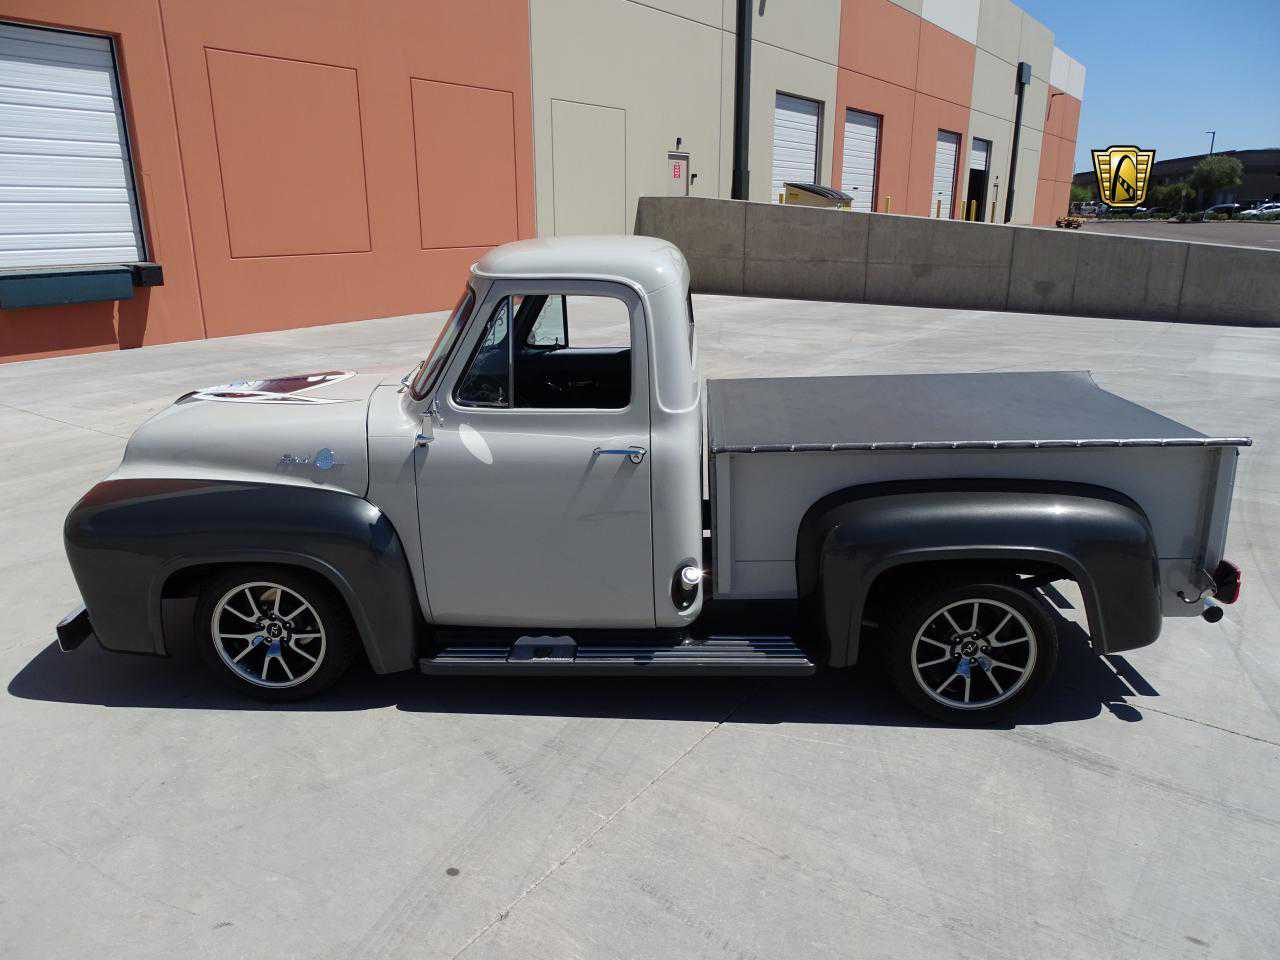 1954 Ford F100 For Sale In Deer Valley Az Gccsct222 Truck